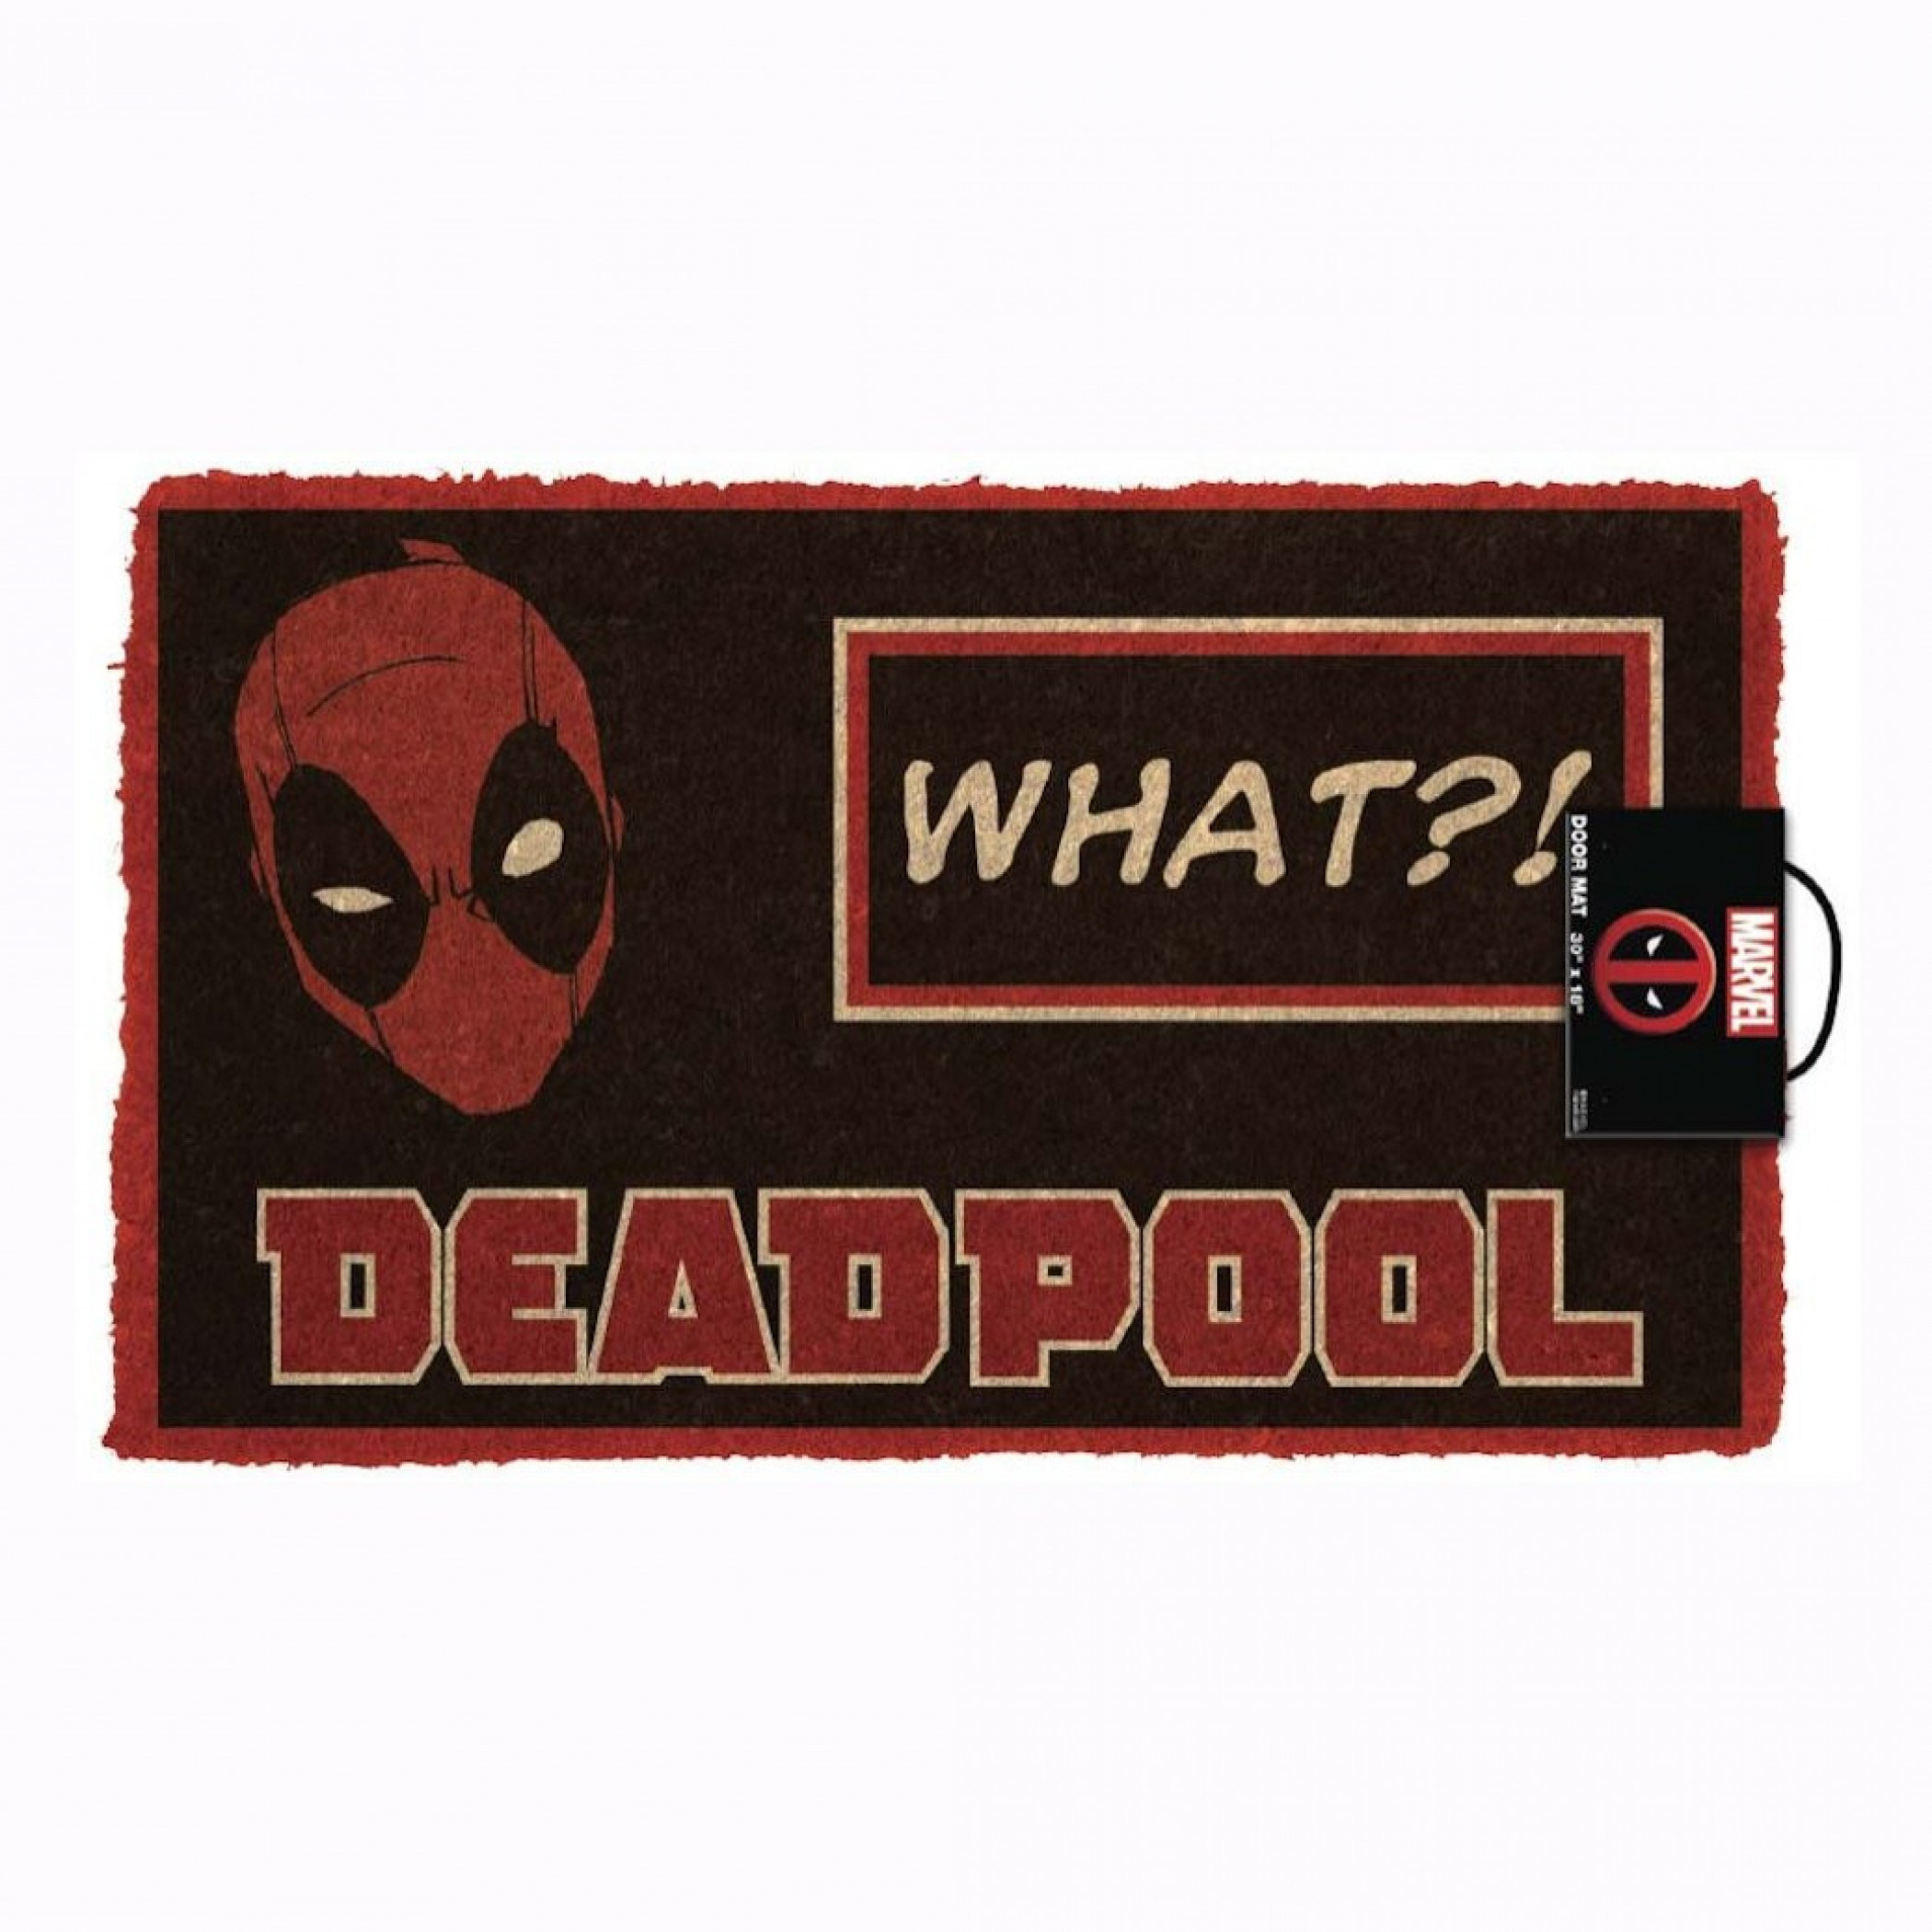 """Deadpool What?! 17""""x 29"""" Doormat with Non-skid Back"""